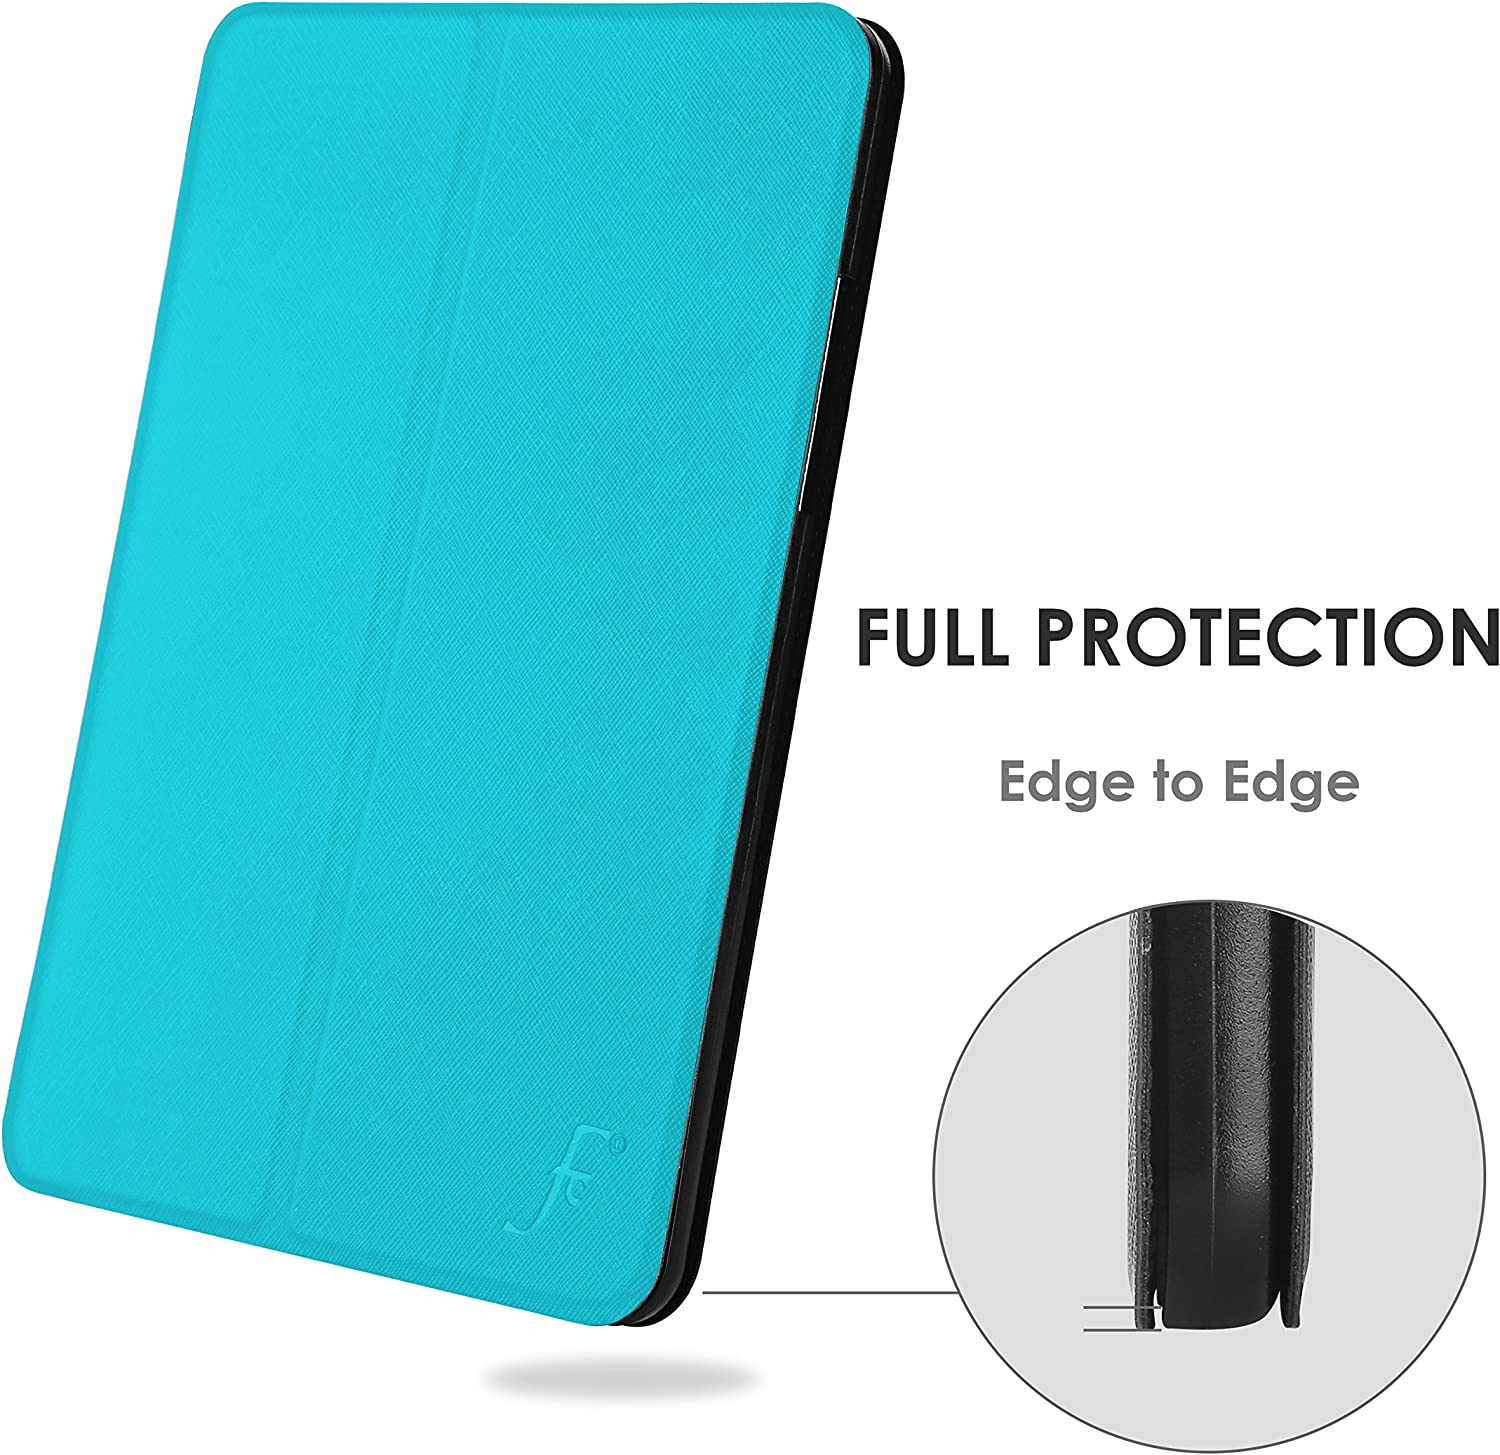 Ultra Slim Lightweight with full device protection Forefront Cases/® Lenovo Tab 4 8 Clam Shell Case Cover Stand NAVY BLUE STYLUS